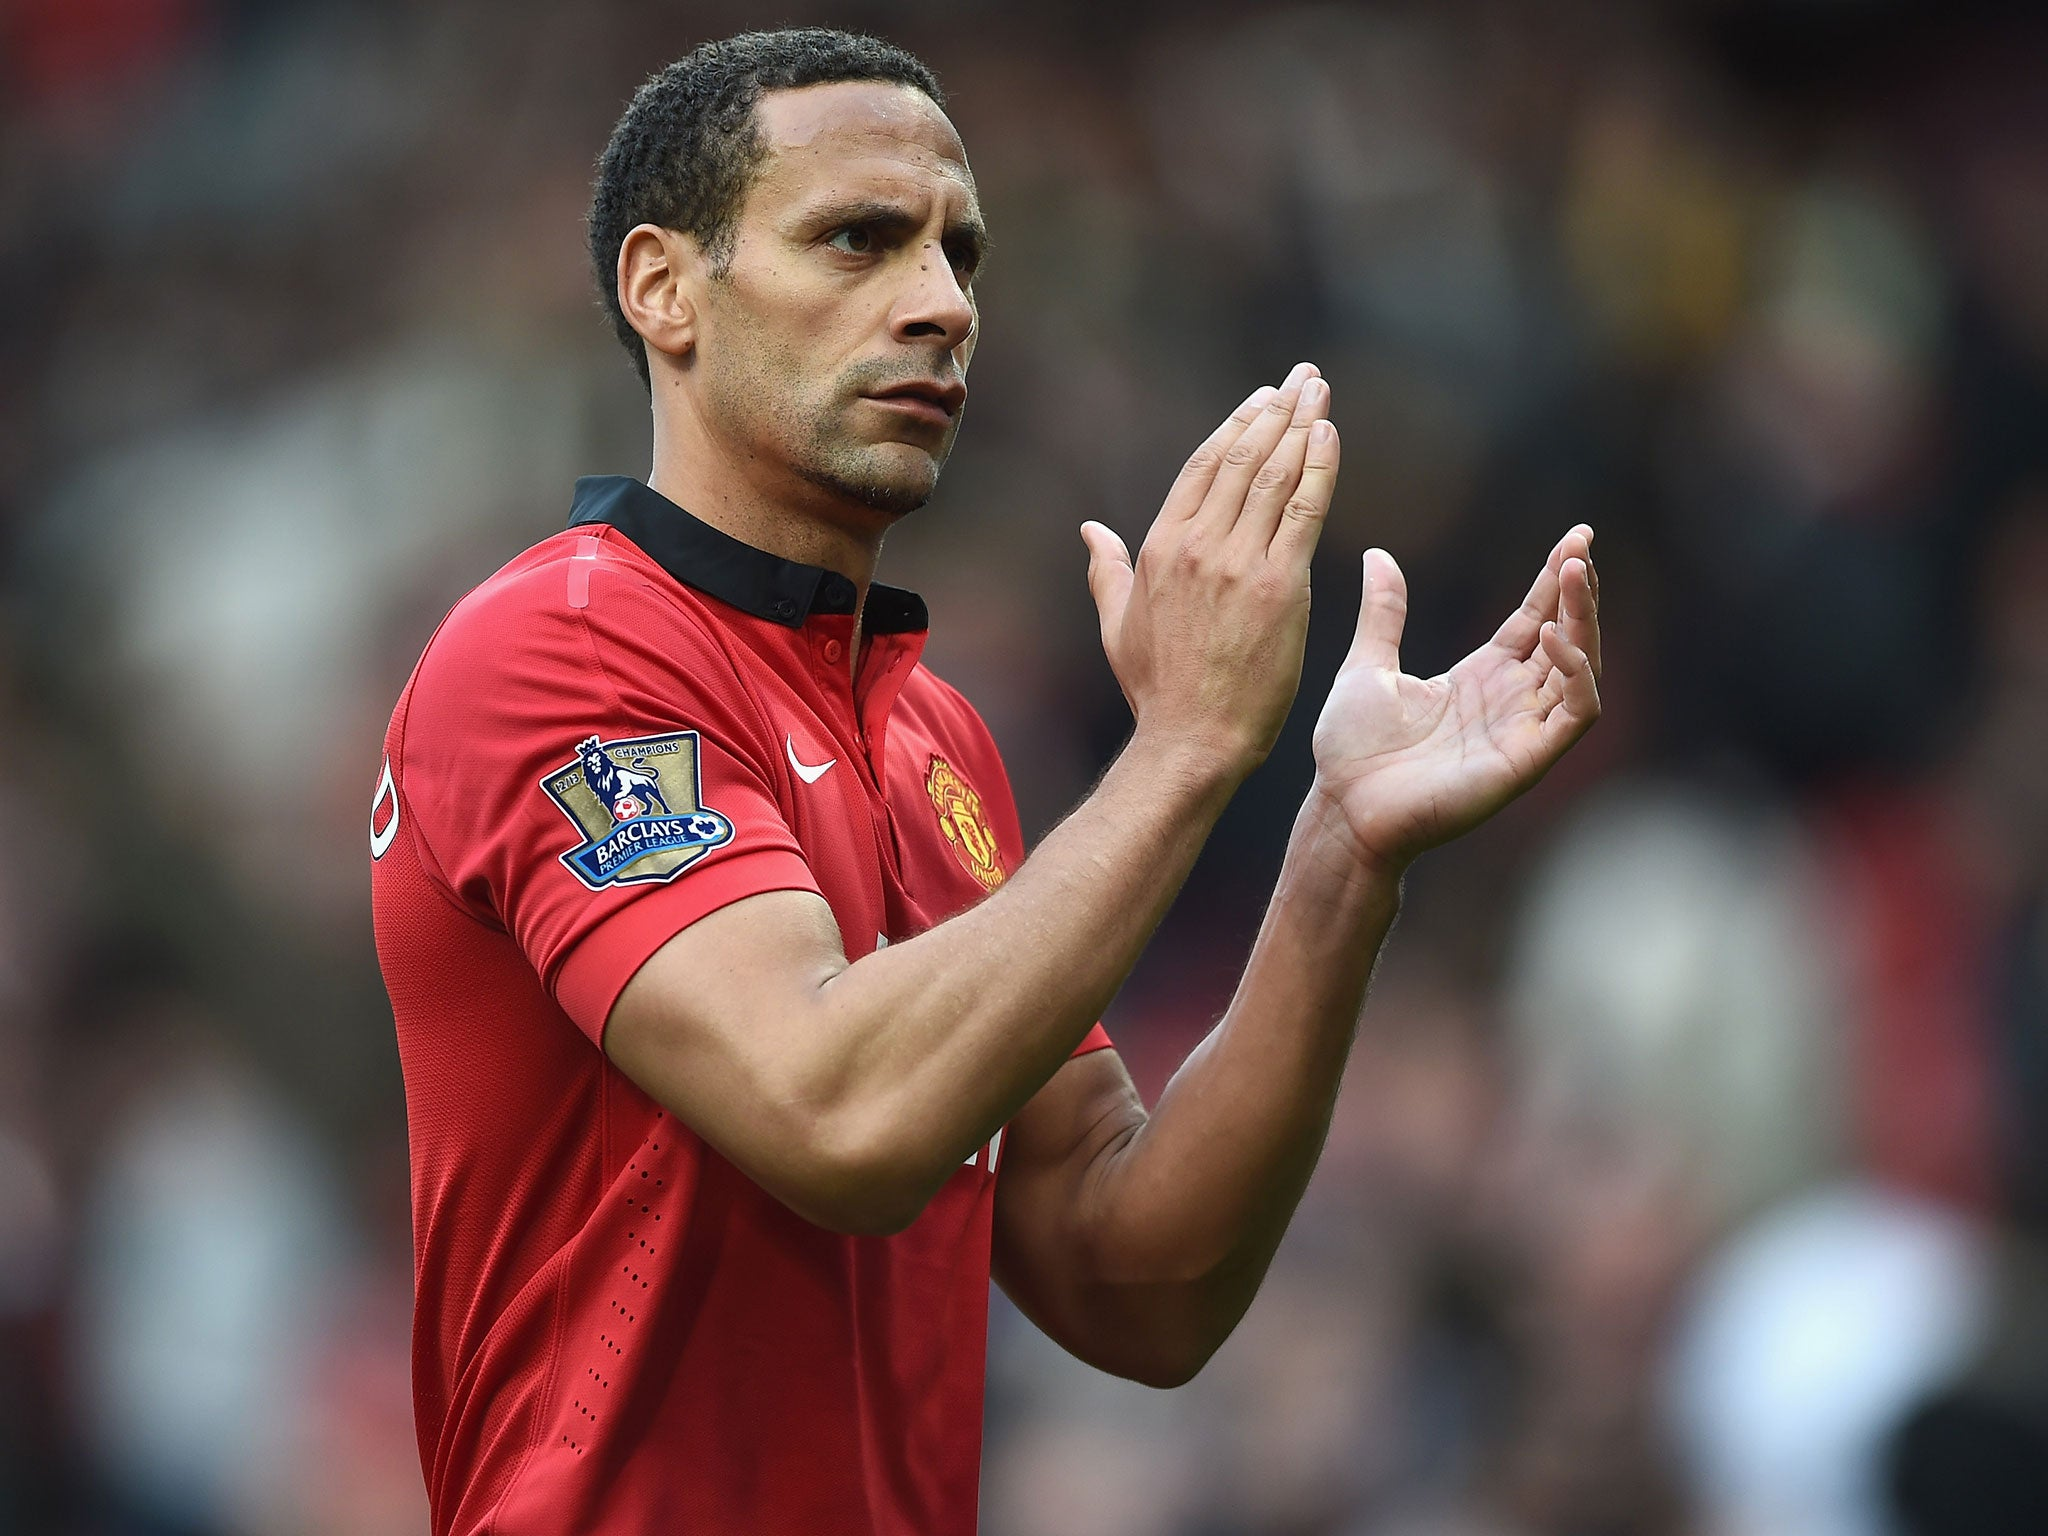 Rio Ferdinand leaves Manchester United Where next for the former